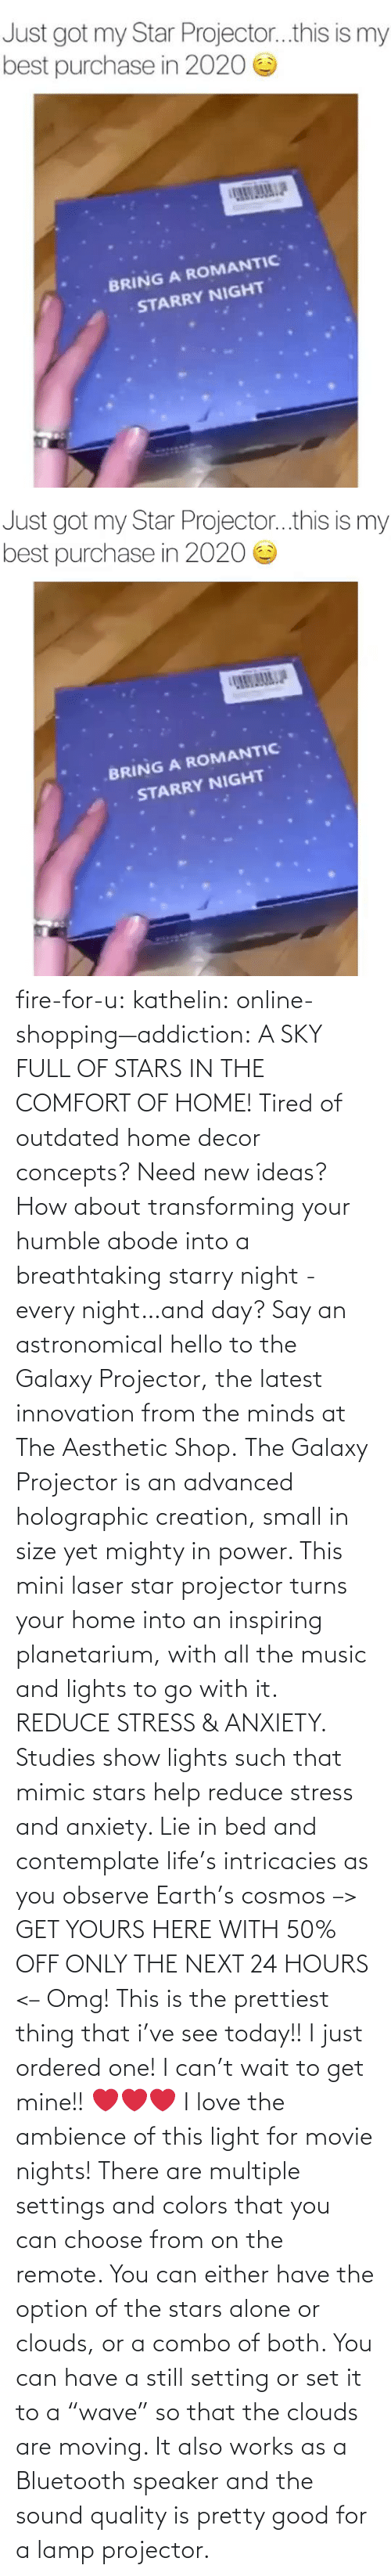 "In Class: fire-for-u:  kathelin: online-shopping—addiction:  A SKY FULL OF STARS IN THE COMFORT OF HOME! Tired of outdated home decor concepts? Need new ideas? How about transforming your humble abode into a breathtaking starry night - every night…and day? Say an astronomical hello to the Galaxy Projector, the latest innovation from the minds at The Aesthetic Shop. The Galaxy Projector is an advanced holographic creation, small in size yet mighty in power. This mini laser star projector turns your home into an inspiring planetarium, with all the music and lights to go with it. REDUCE STRESS & ANXIETY. Studies show lights such that mimic stars help reduce stress and anxiety. Lie in bed and contemplate life's intricacies as you observe Earth's cosmos  –> GET YOURS HERE WITH 50% OFF ONLY THE NEXT 24 HOURS <–   Omg! This is the prettiest thing that i've see today!! I just ordered one! I can't wait to get mine!! ❤️️❤️️❤️️  I love the ambience of this light for movie nights! There are multiple settings and colors that you can choose from on the remote. You can either have the option of the stars alone or clouds, or a combo of both. You can have a still setting or set it to a ""wave"" so that the clouds are moving. It also works as a Bluetooth speaker and the sound quality is pretty good for a lamp projector."